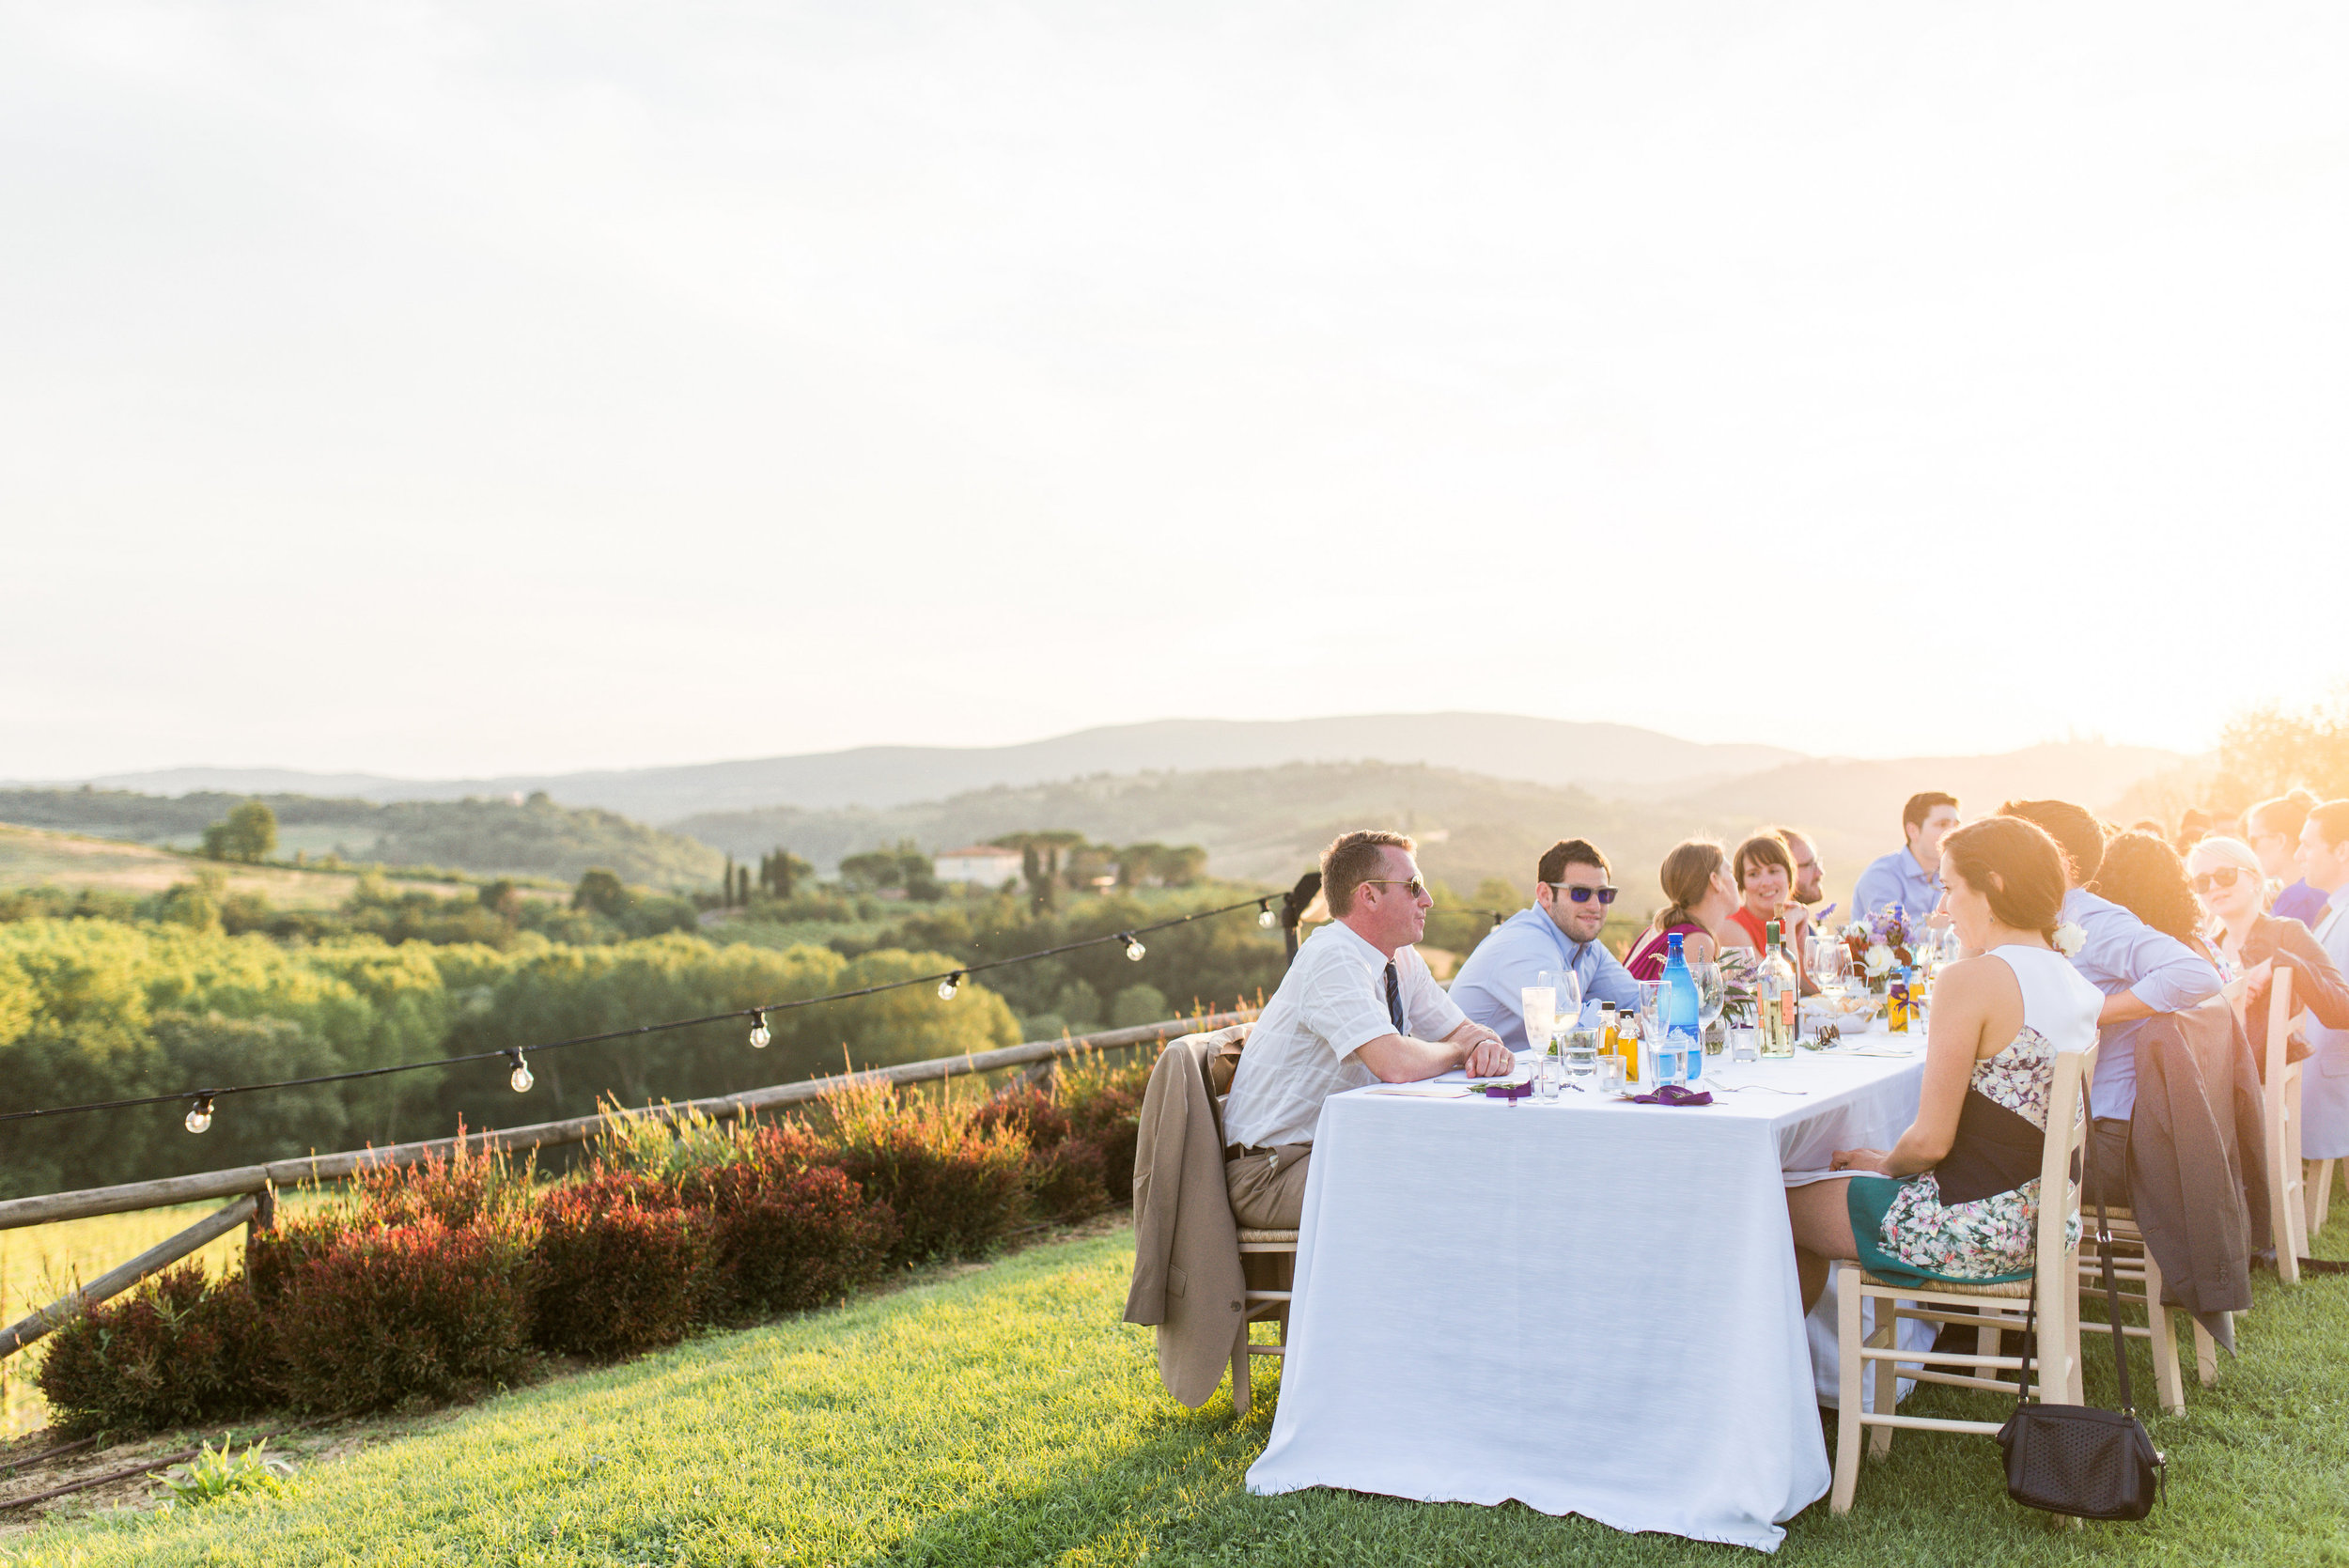 millennials-eating-together-stunning-view-in-tuscany-italy-around-sunset_t20_WQdAoY.jpg